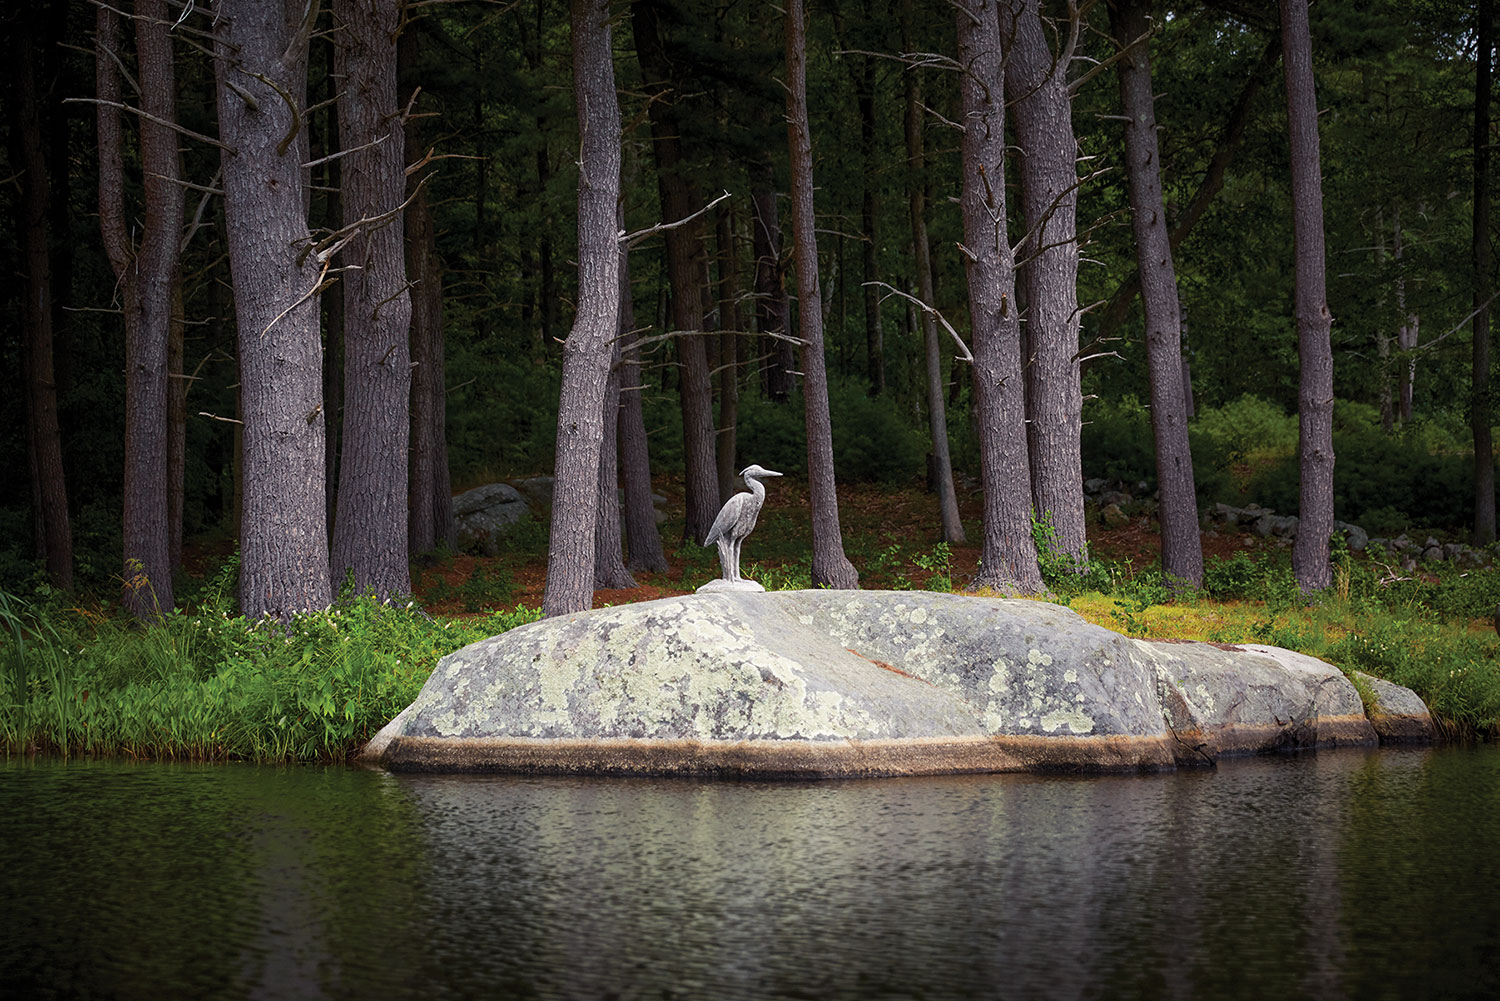 The statue stands on a large rock at the edge of a body of water. In the background is a dense forest.